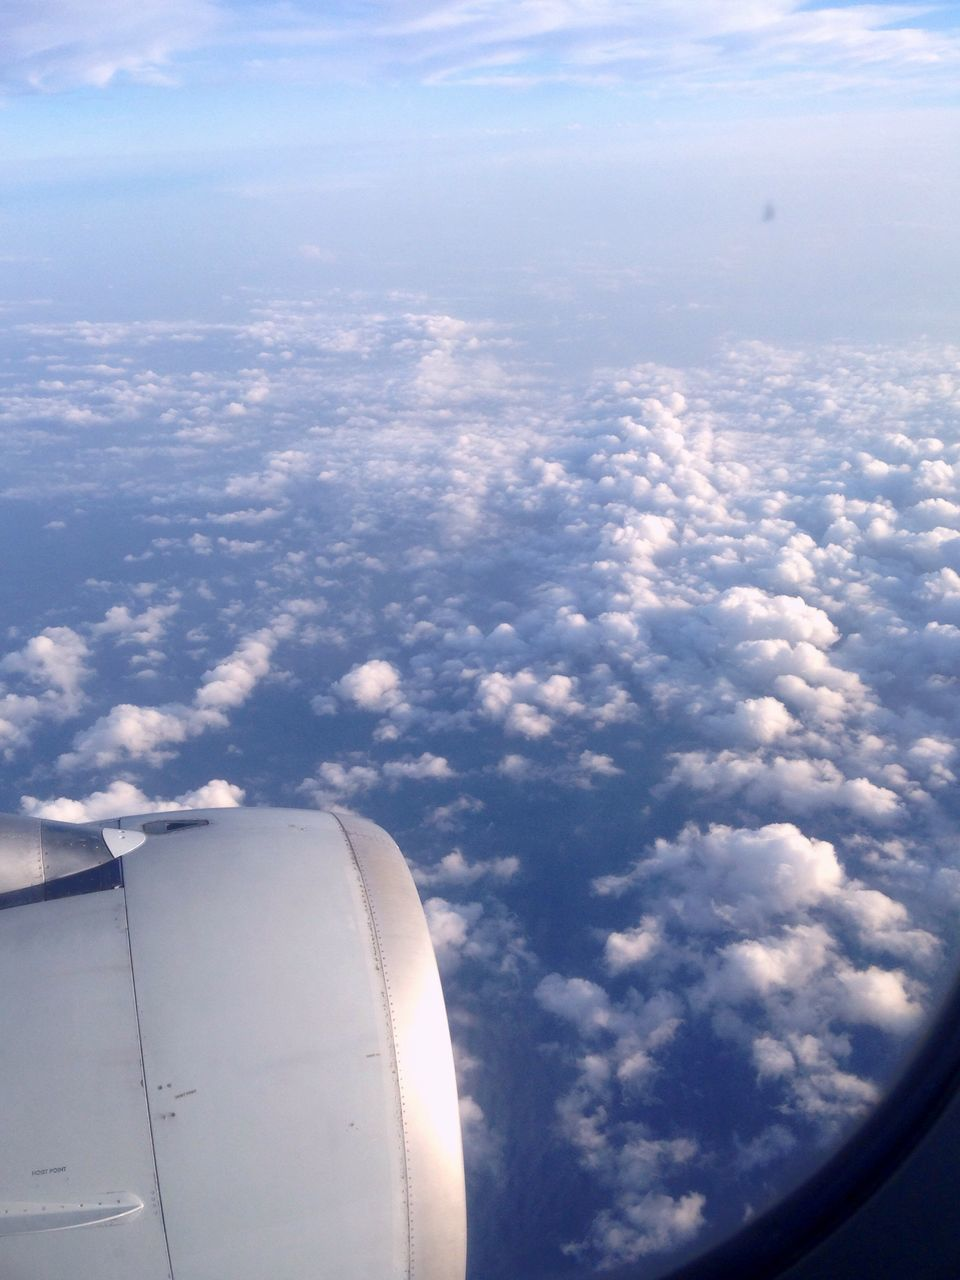 airplane, cloud - sky, sky, journey, air vehicle, transportation, cloudscape, no people, airplane wing, travel, day, mode of transport, jet engine, flying, nature, aerial view, blue, beauty in nature, mid-air, outdoors, scenics